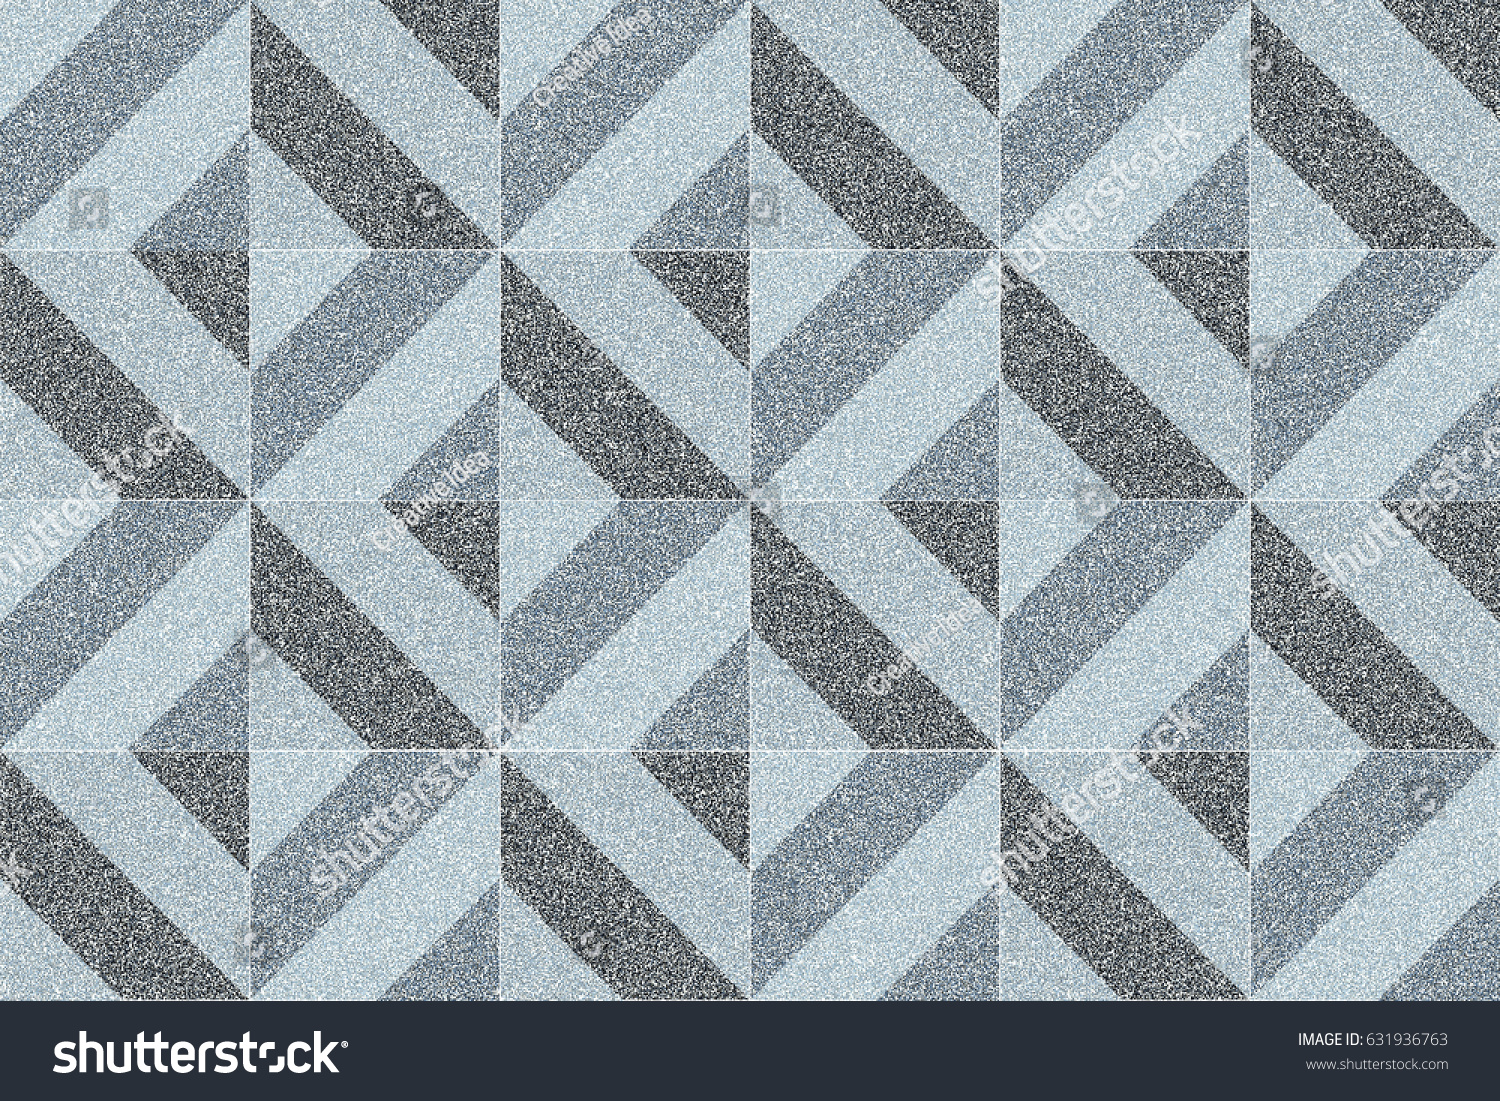 3 D Home Decorative Wall Tiles Stock Illustration 631936763 ...